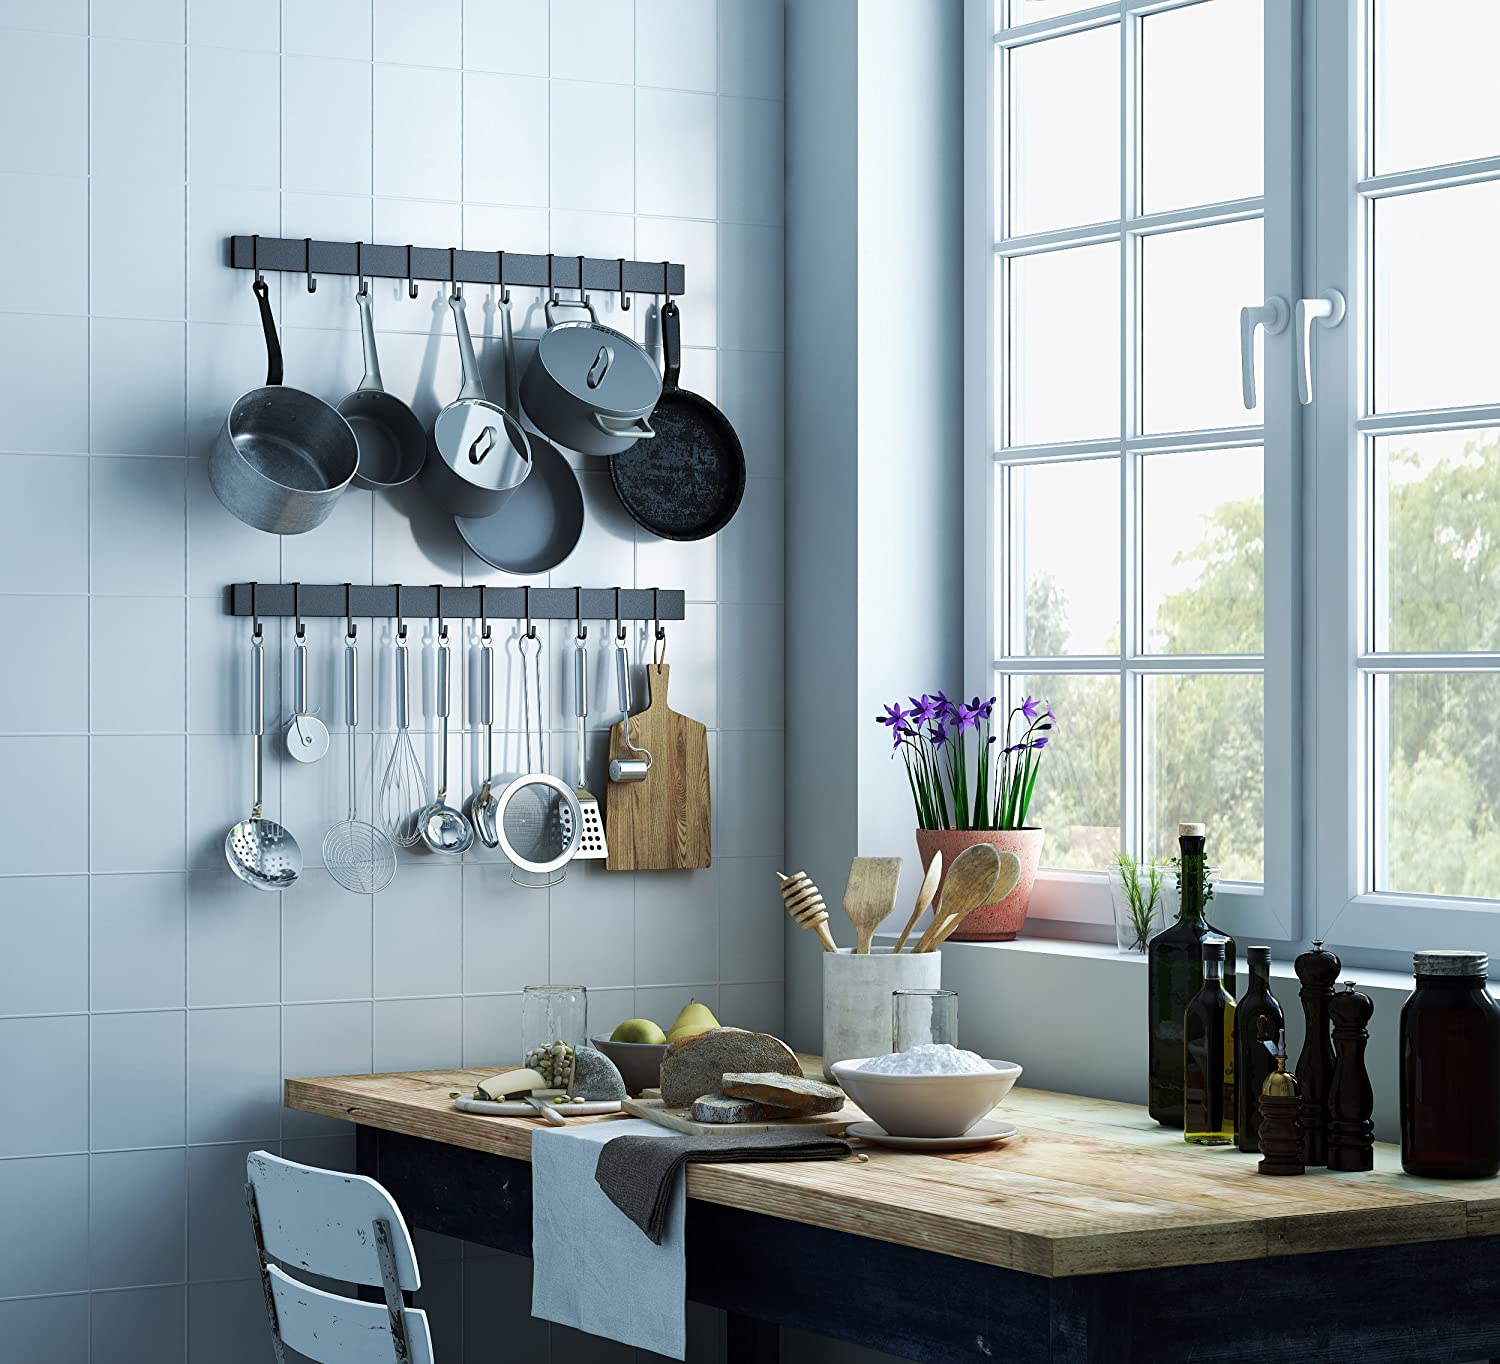 Amazon.com: WALLNITURE Kitchen Rail Organizer Iron Hanging Utensils ...